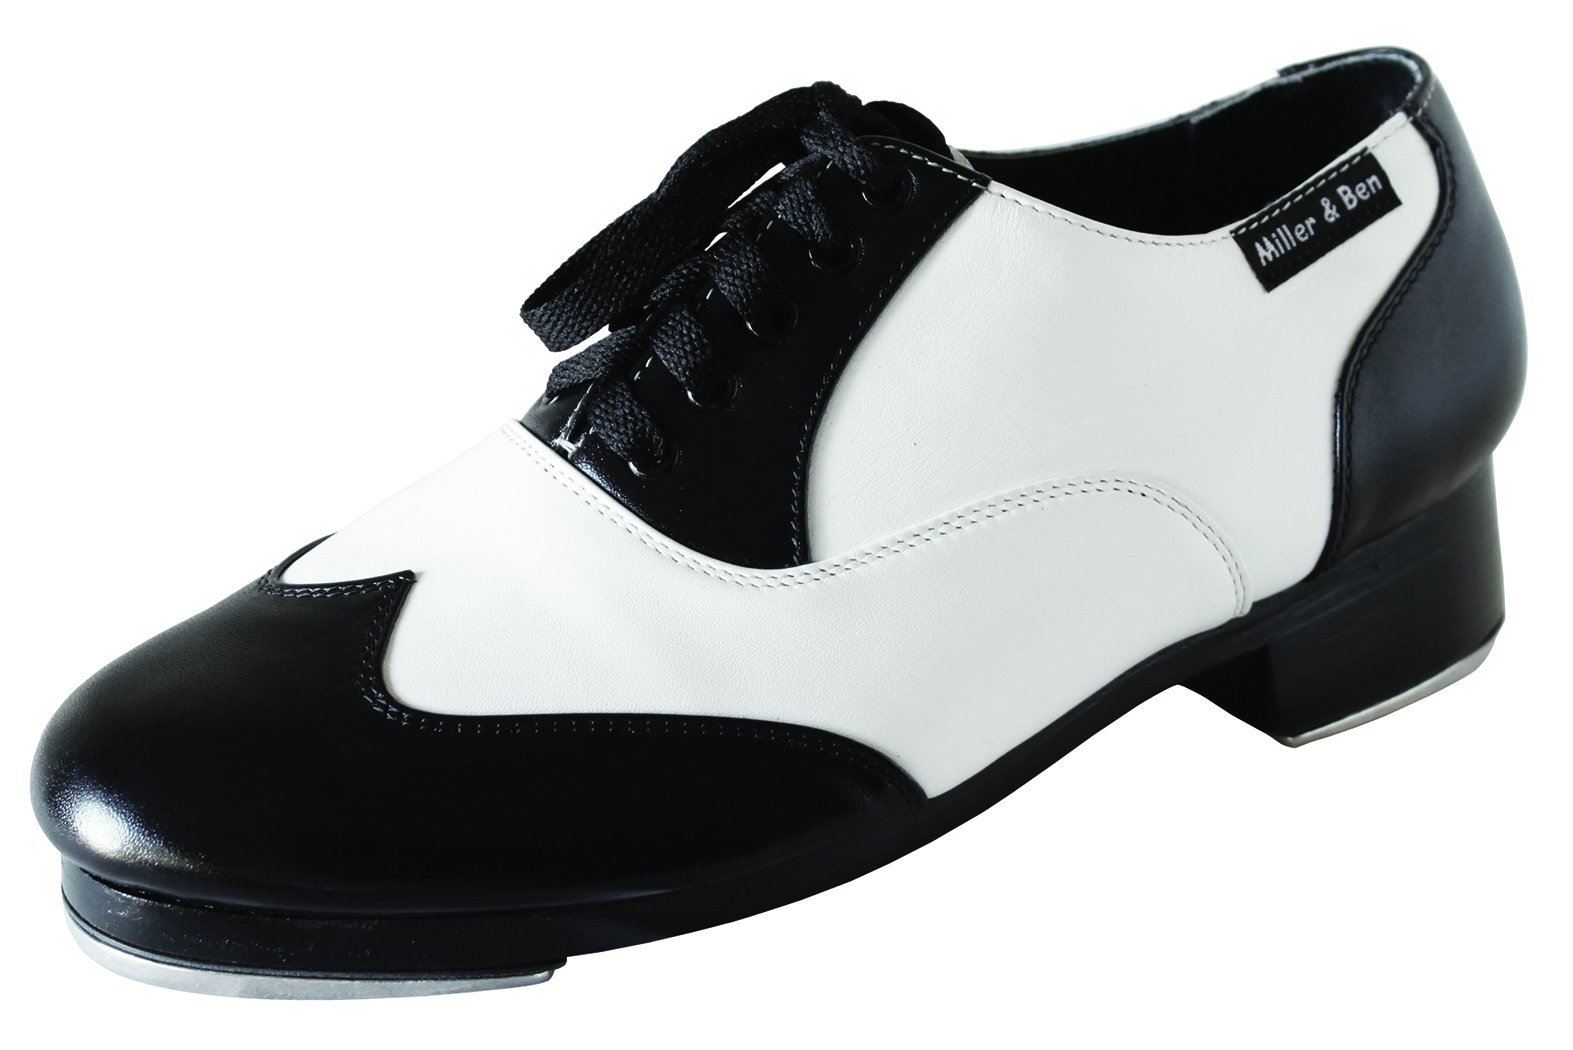 Miller & Ben Tap Shoes; Jazz-Tap Master; Black & White - Wide Sizes ONLY (39.5 Wide)